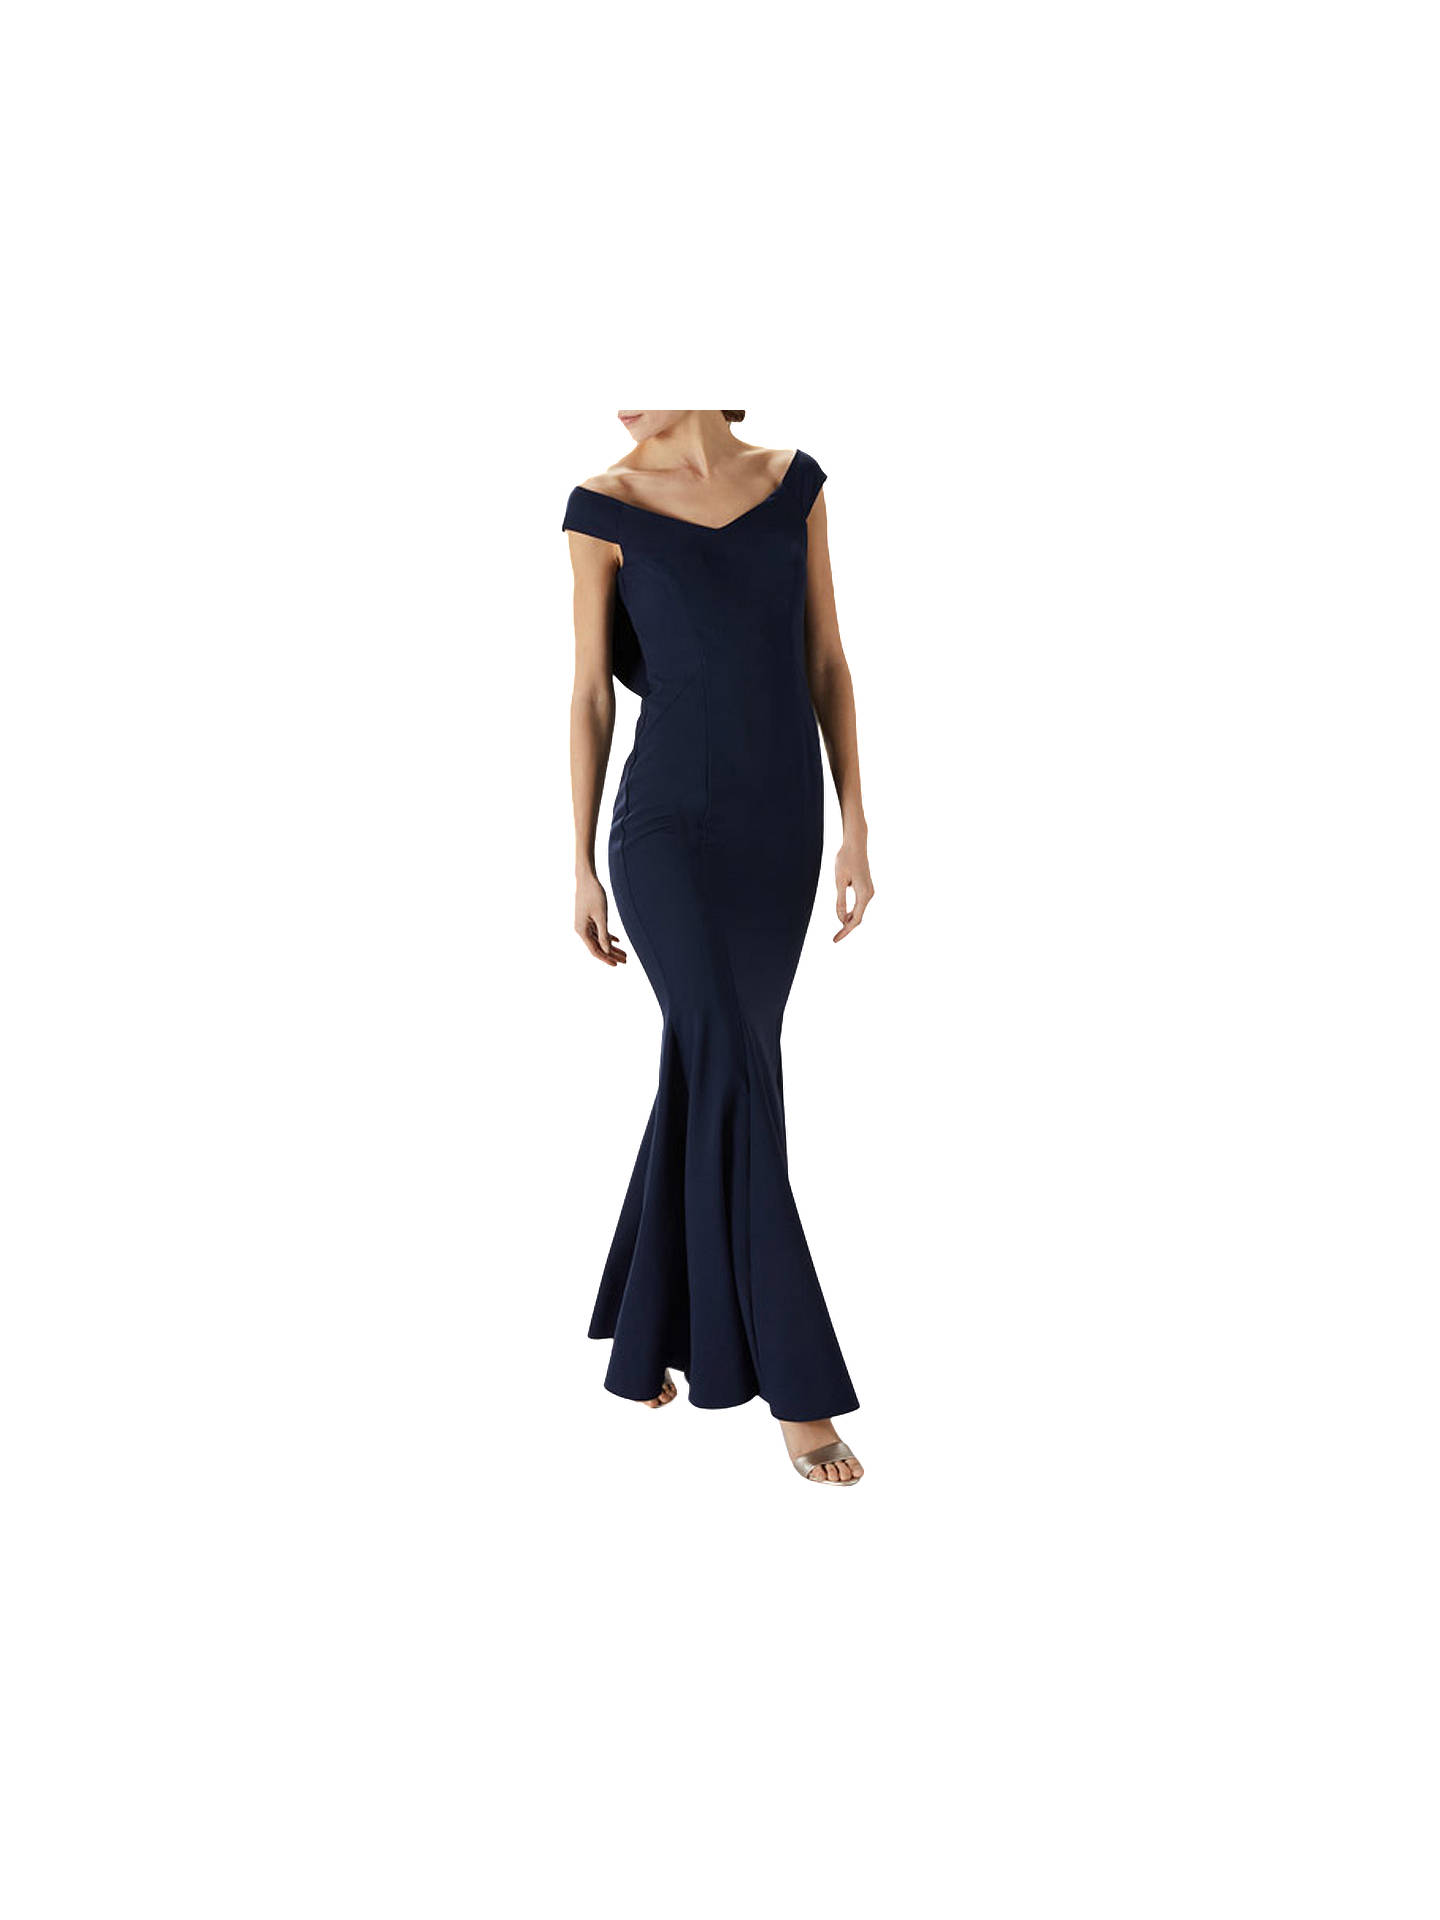 BuyCoast Mel Maxi Dress, Navy, 6 Online at johnlewis.com